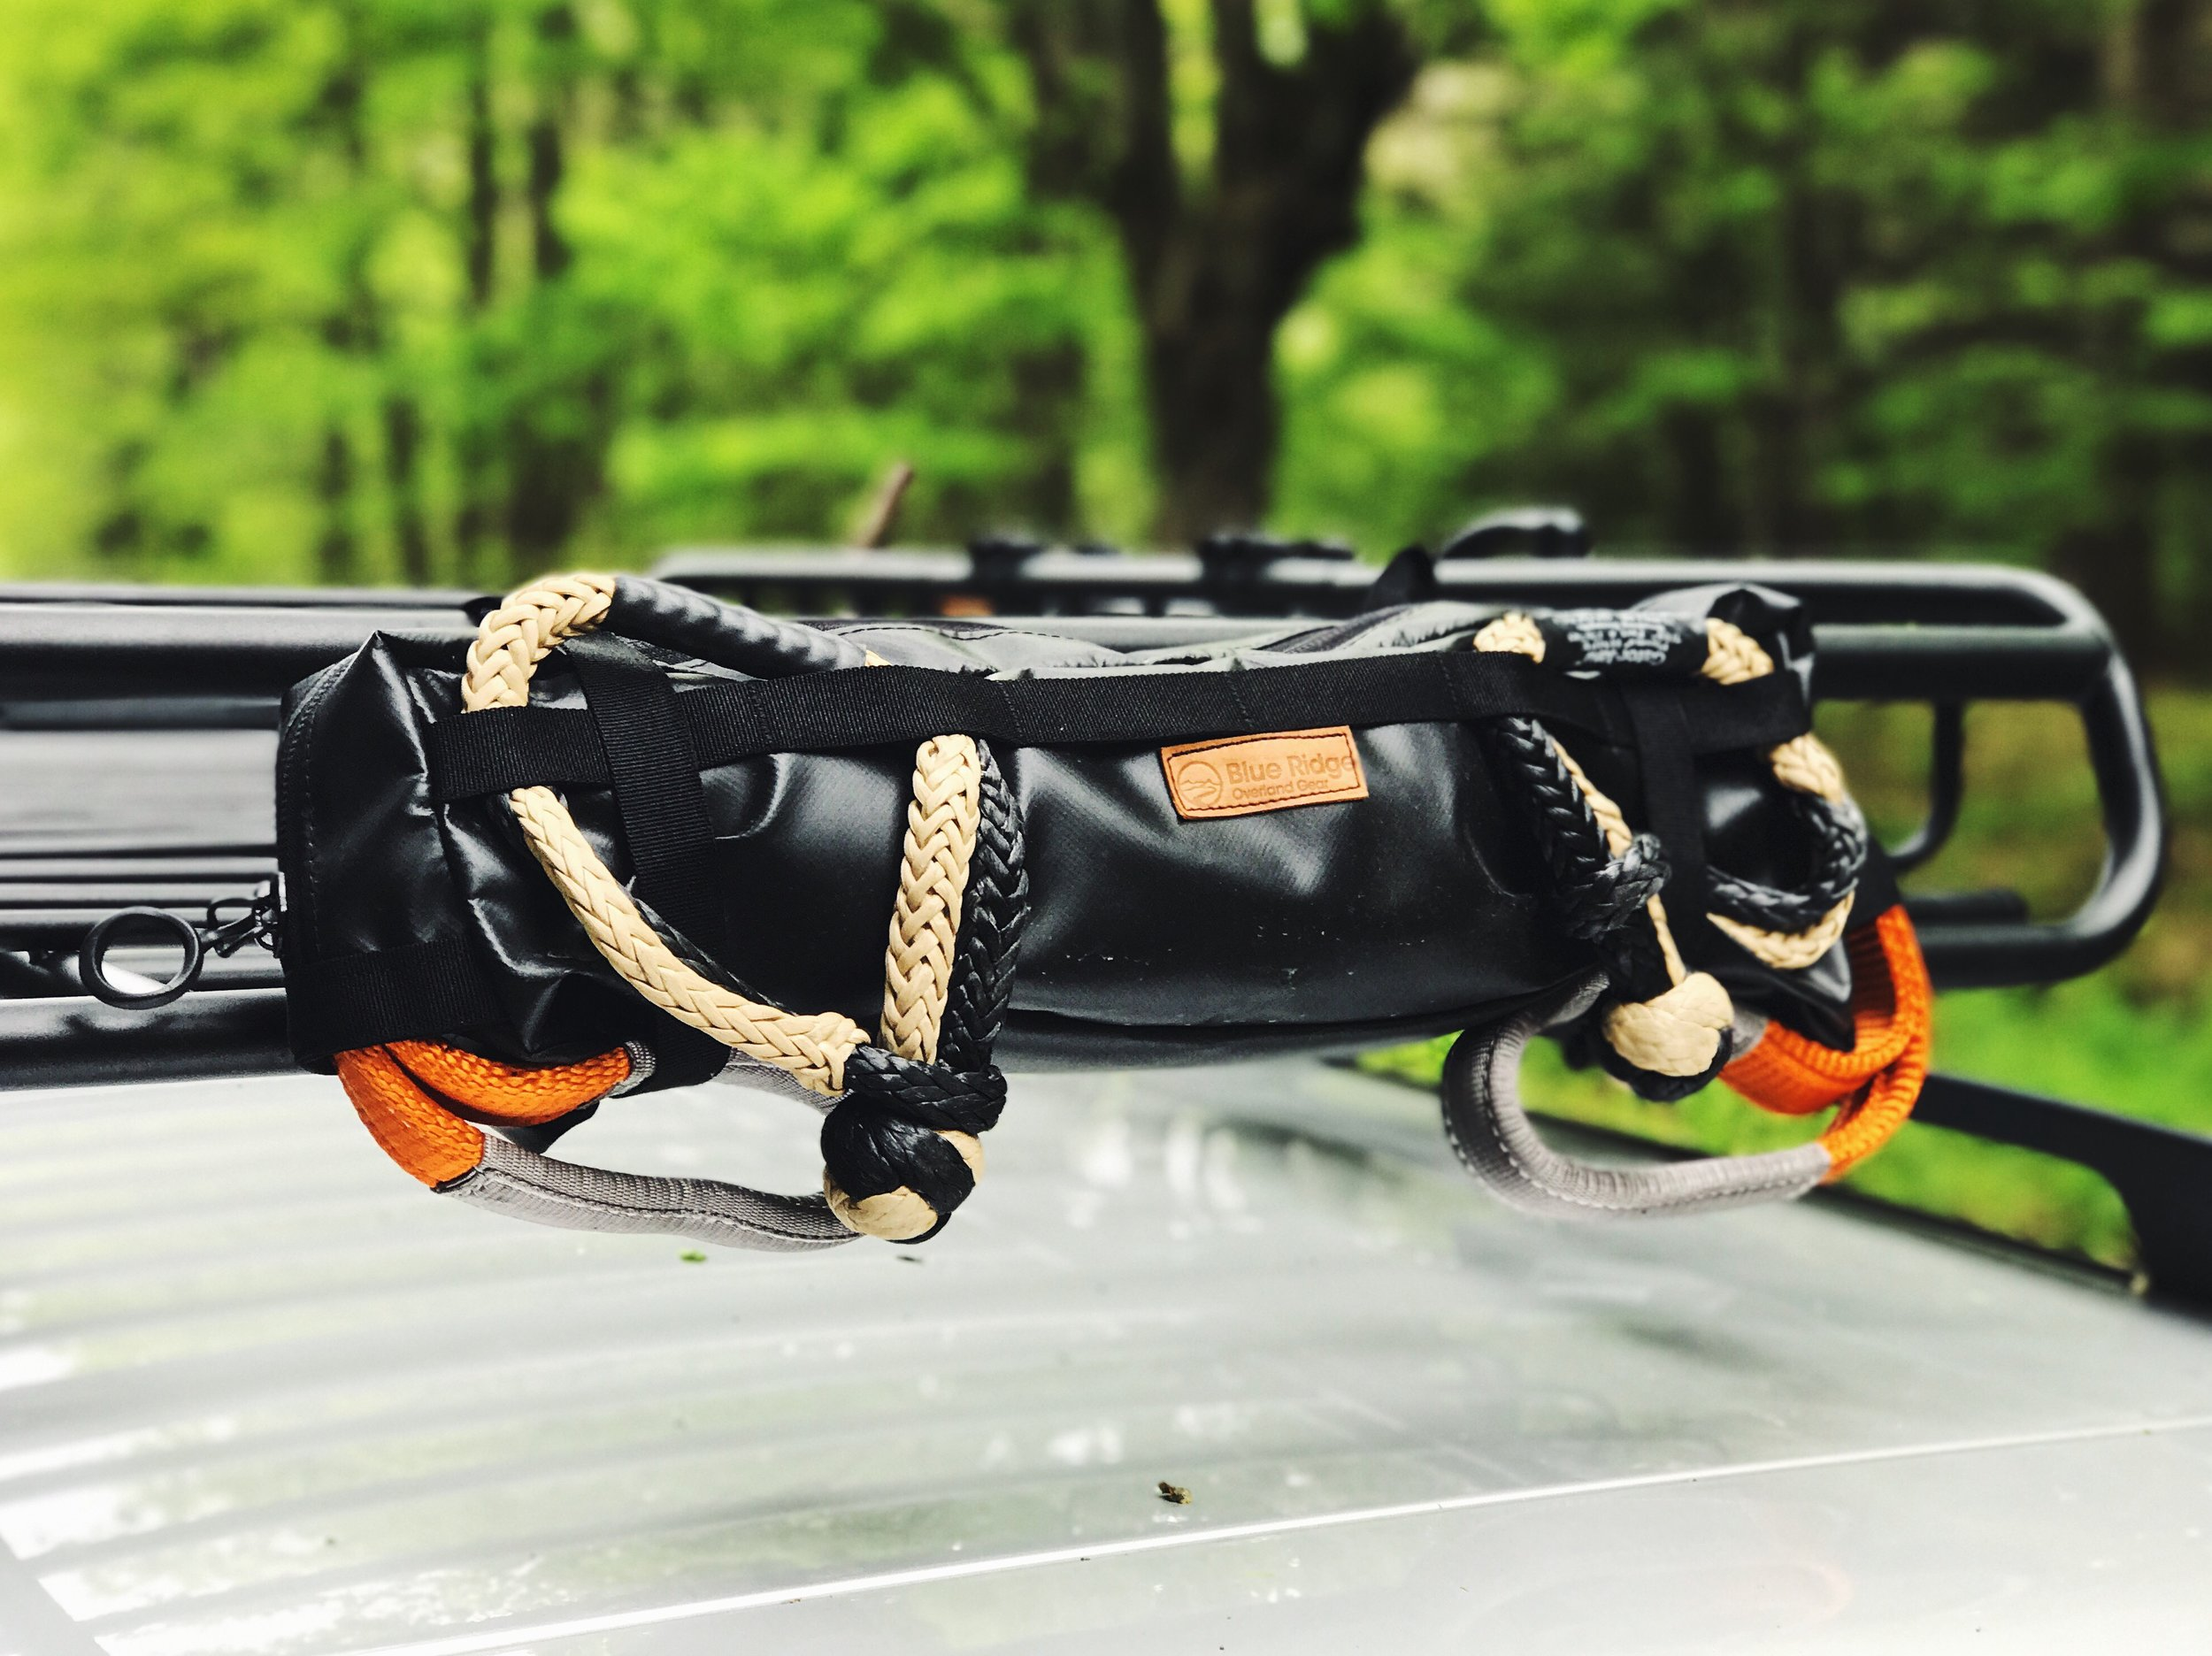 The BROG Strap Bag hits the trail